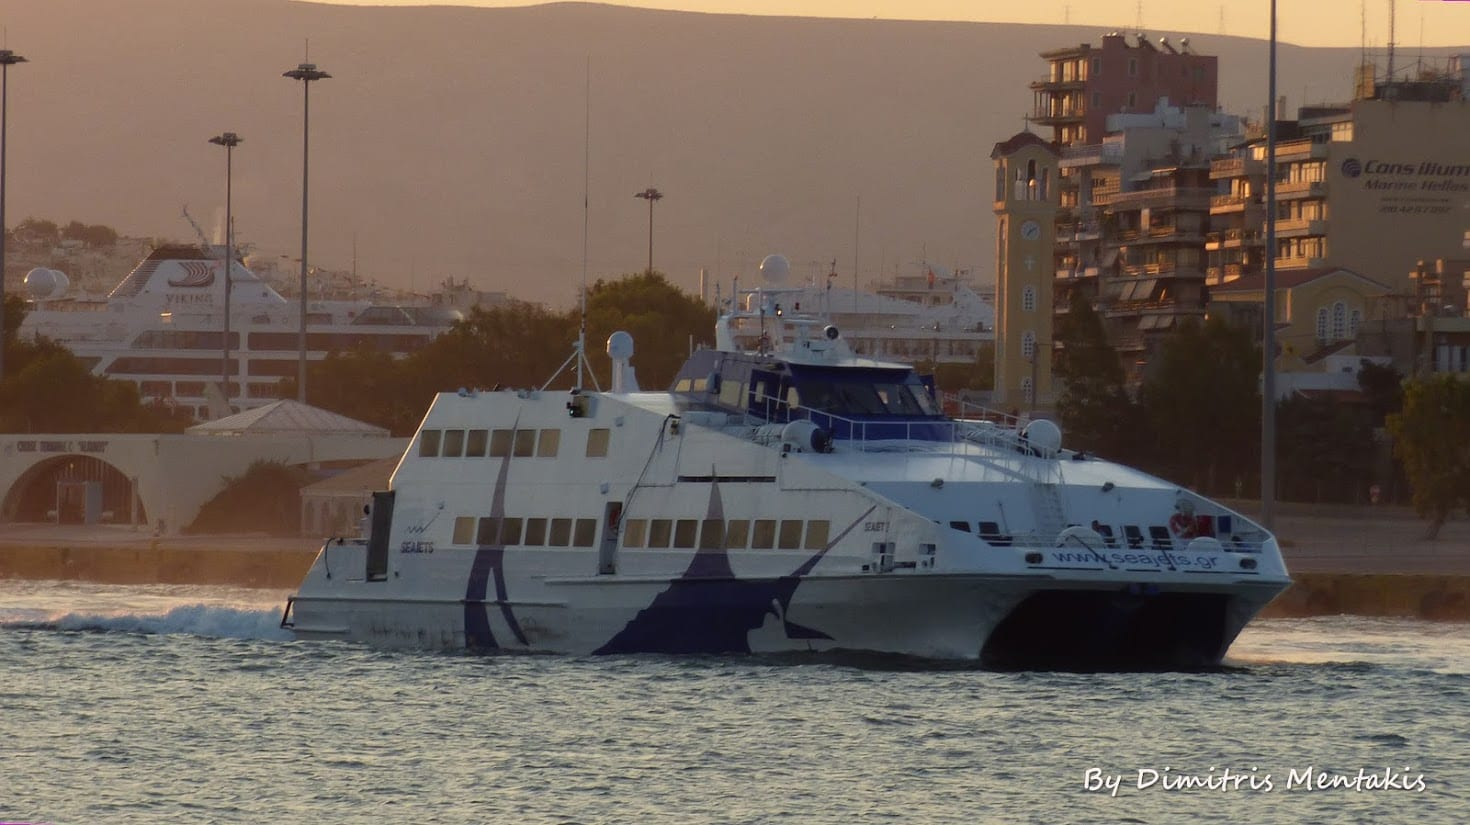 A photo of the Seajet 2 ferry in Greece that travels from Mykonos to Milos island